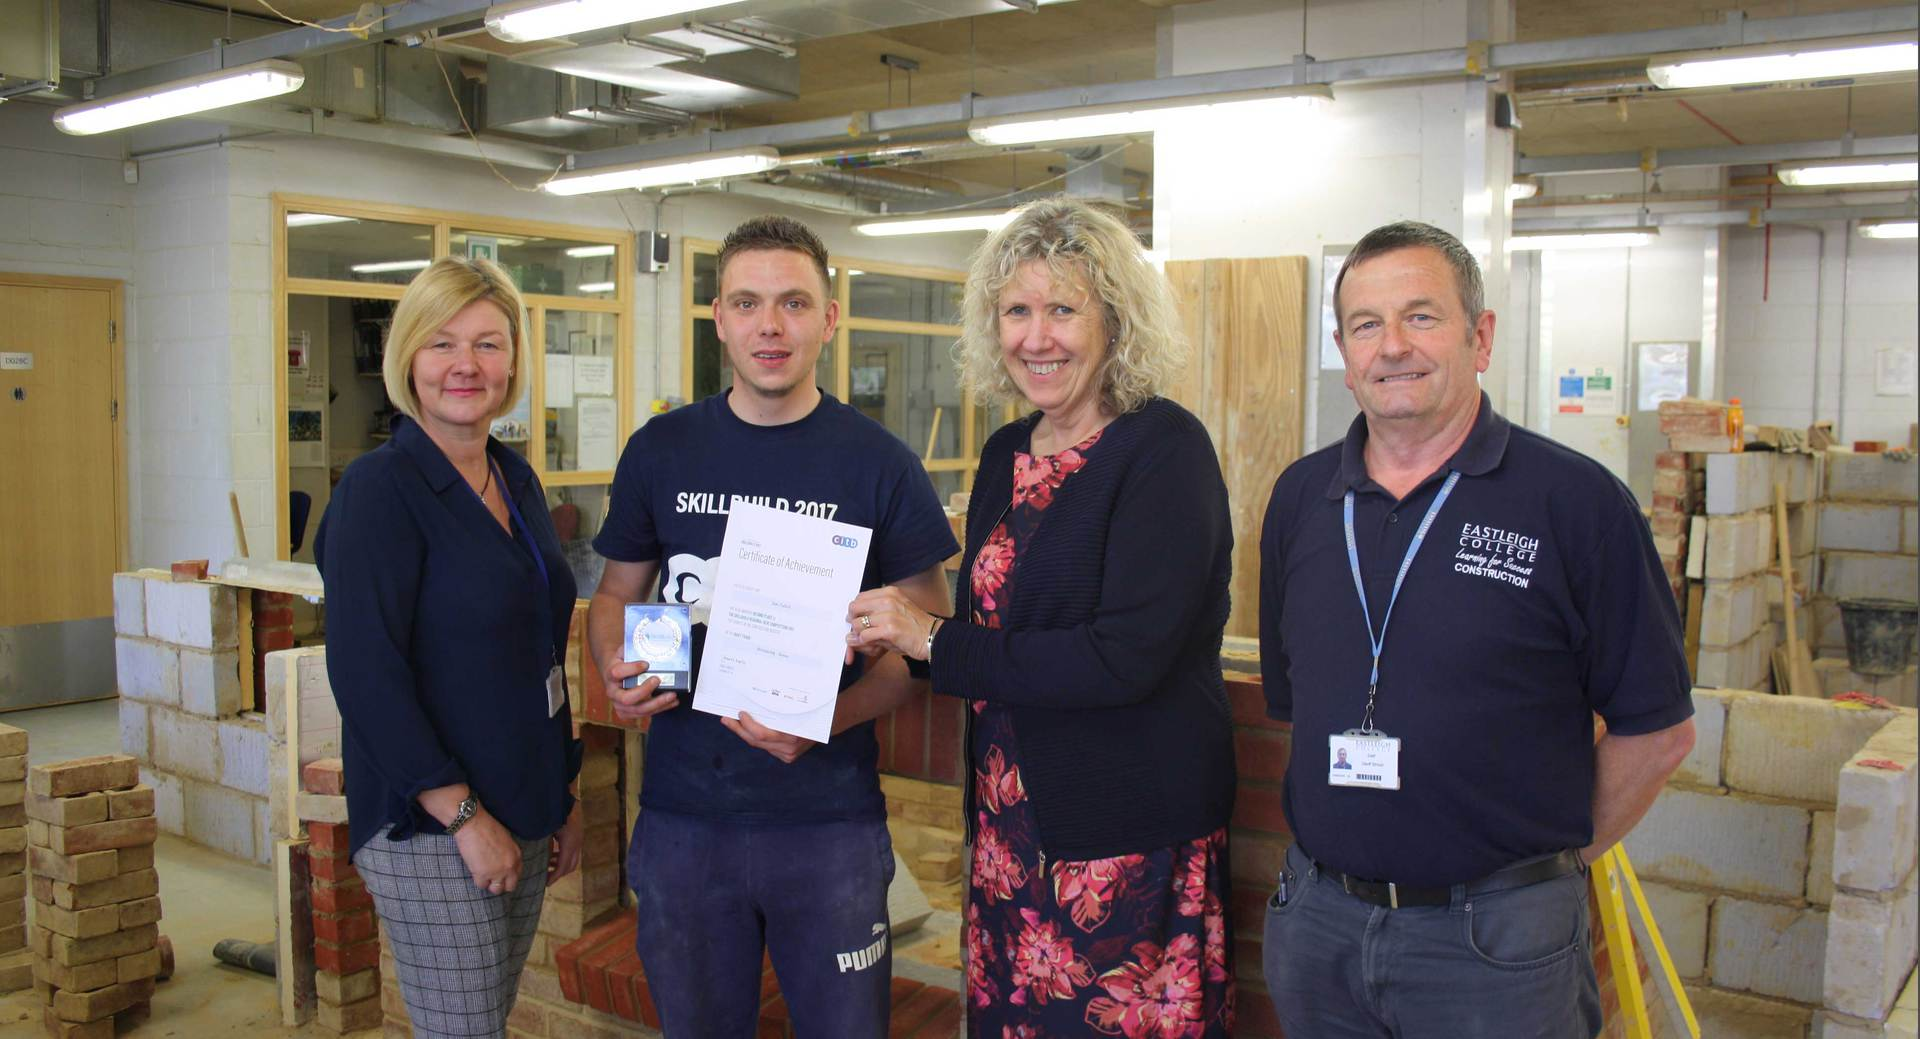 Students trade materials for medals in regional SkillBuild competition